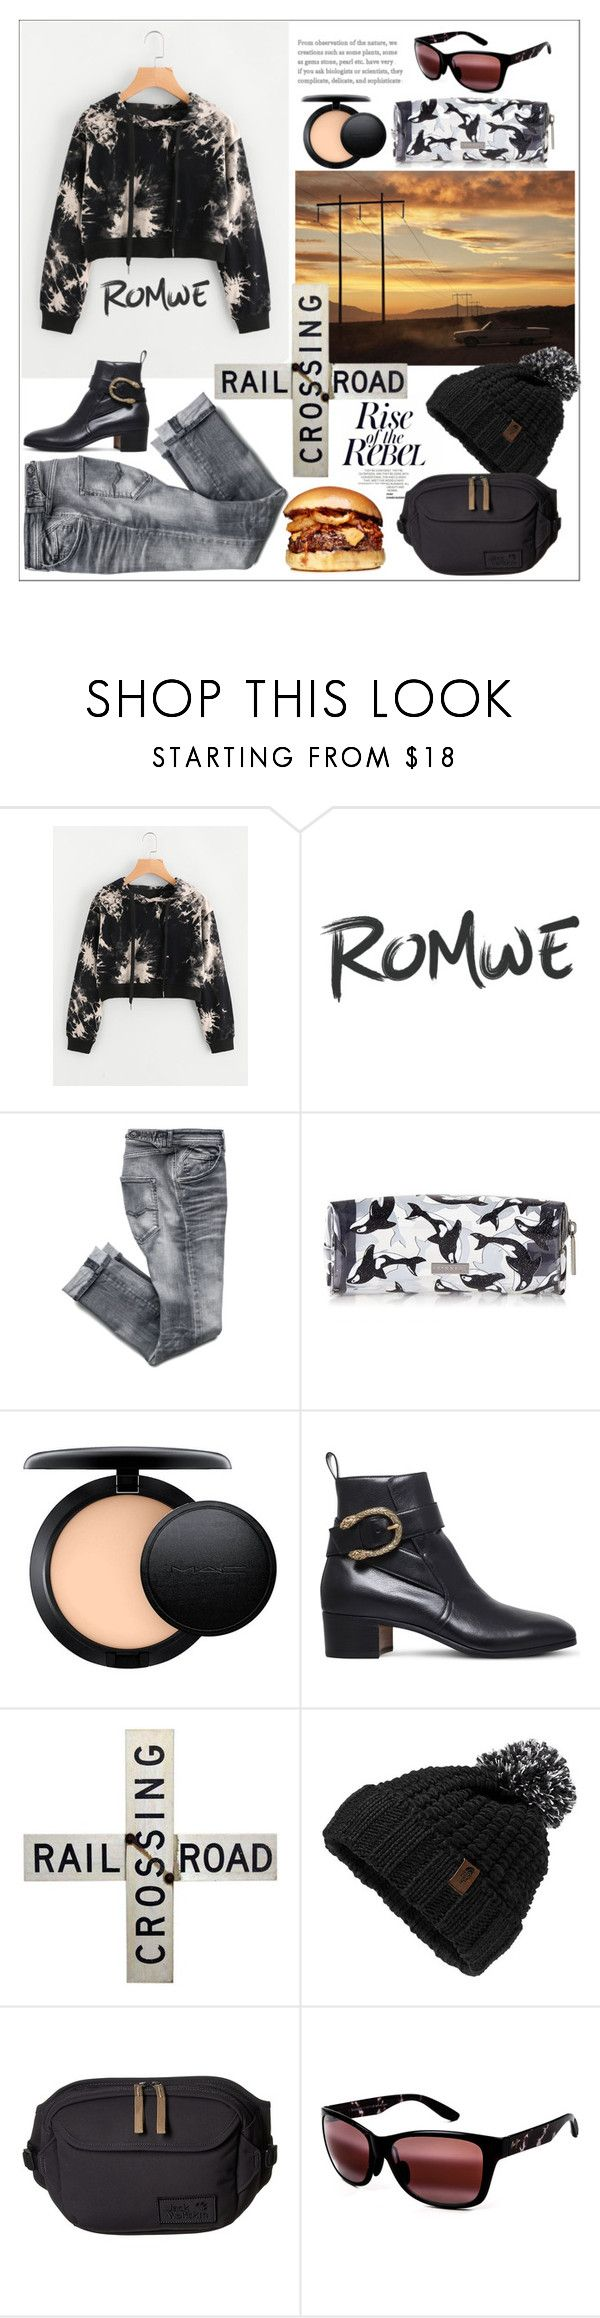 """Romwe"" by natalyapril1976 ❤ liked on Polyvore featuring Anja, MAC Cosmetics, Gucci, The North Face, Jack Wolfskin and Maui Jim"